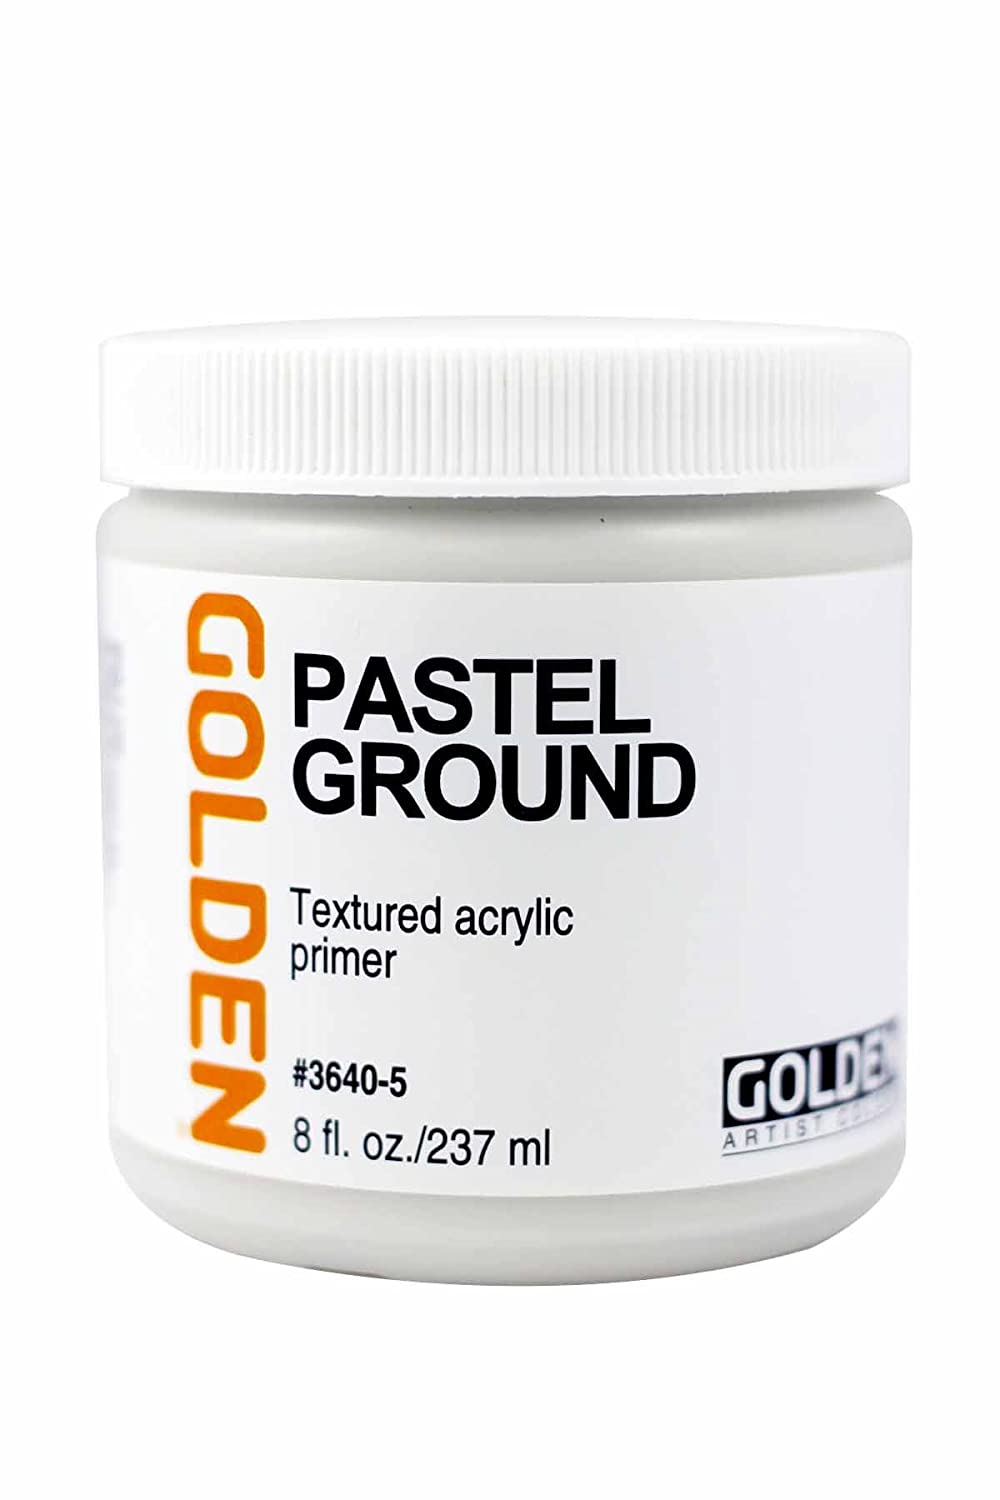 Golden Acrylic Ground for Pastel, 8 oz Golden Artist Colors 36405